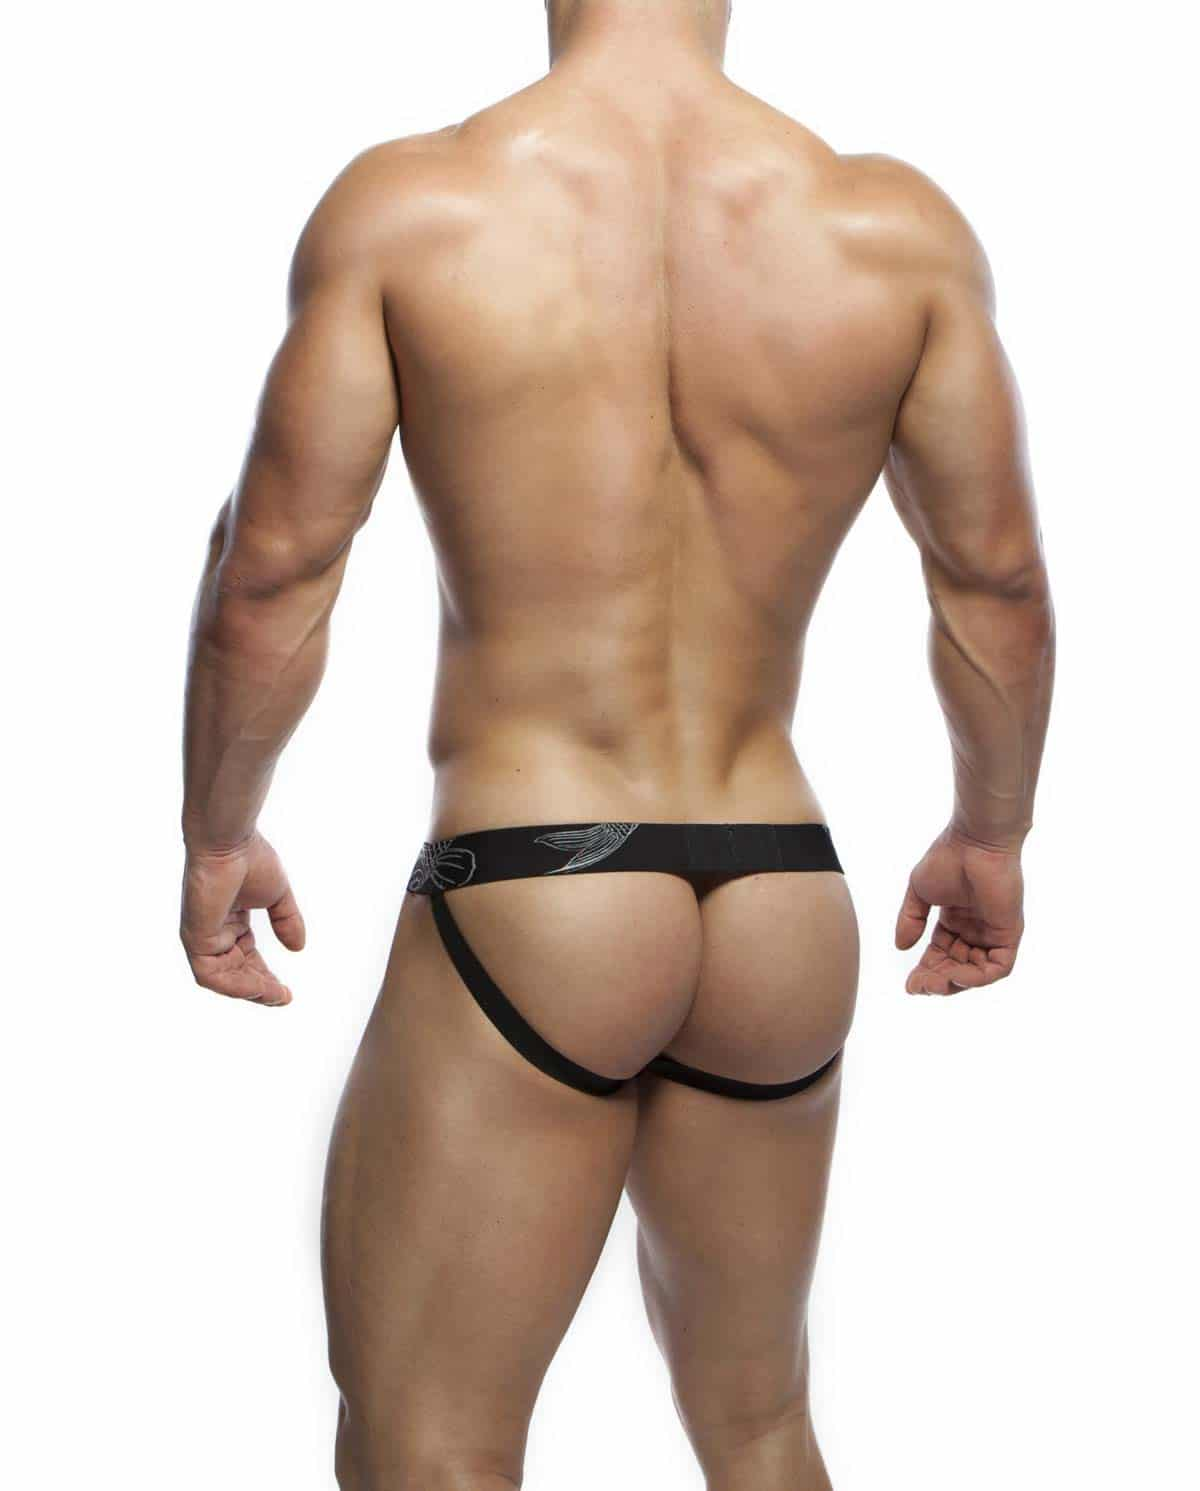 Male underwear model wearing Alexander Cobb Envy Jockstrap - Front View